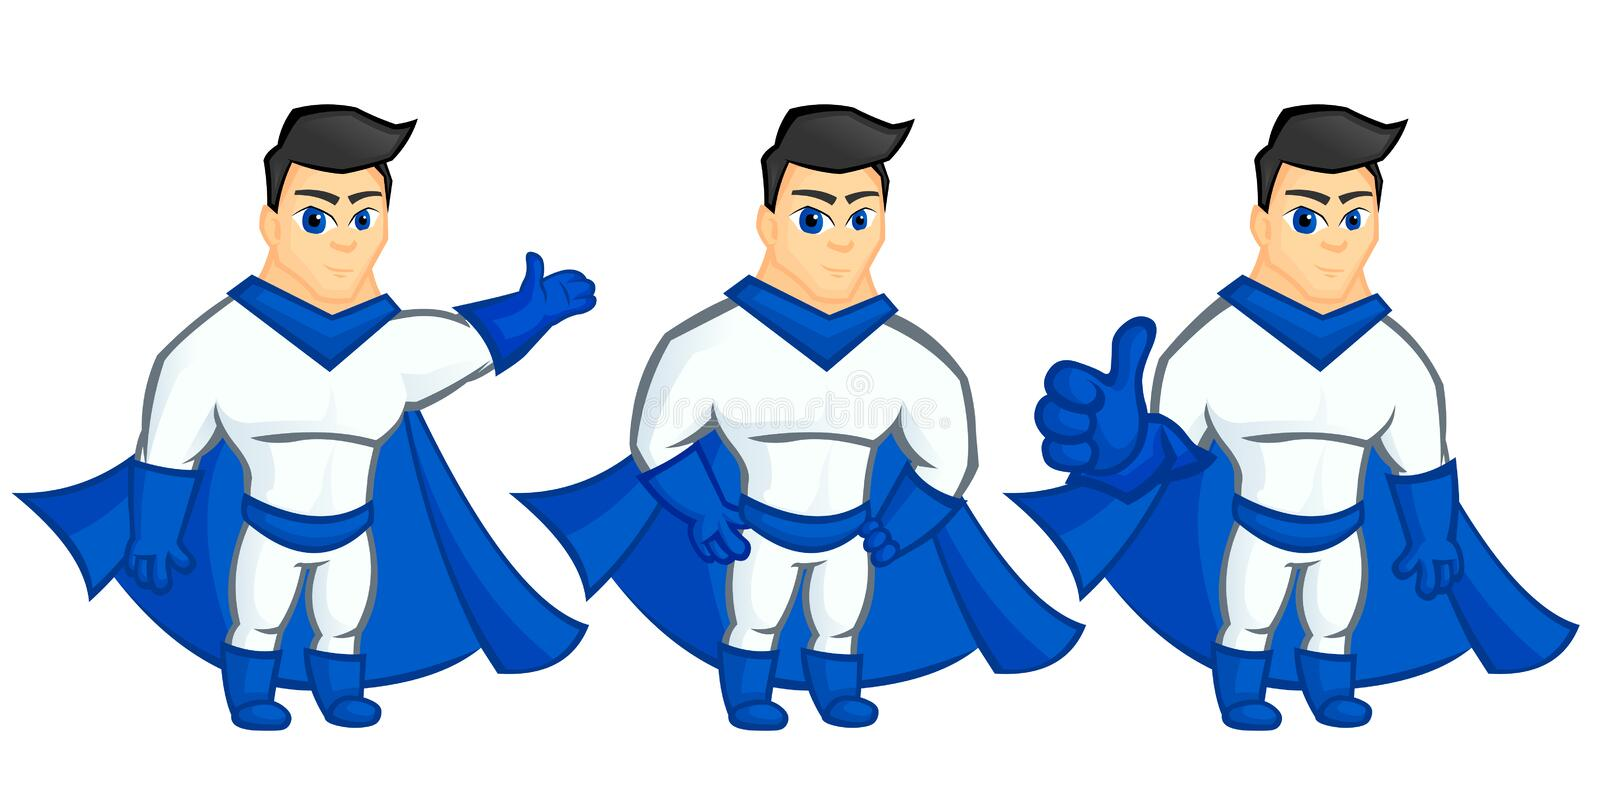 Superhero mascot royalty free stock images